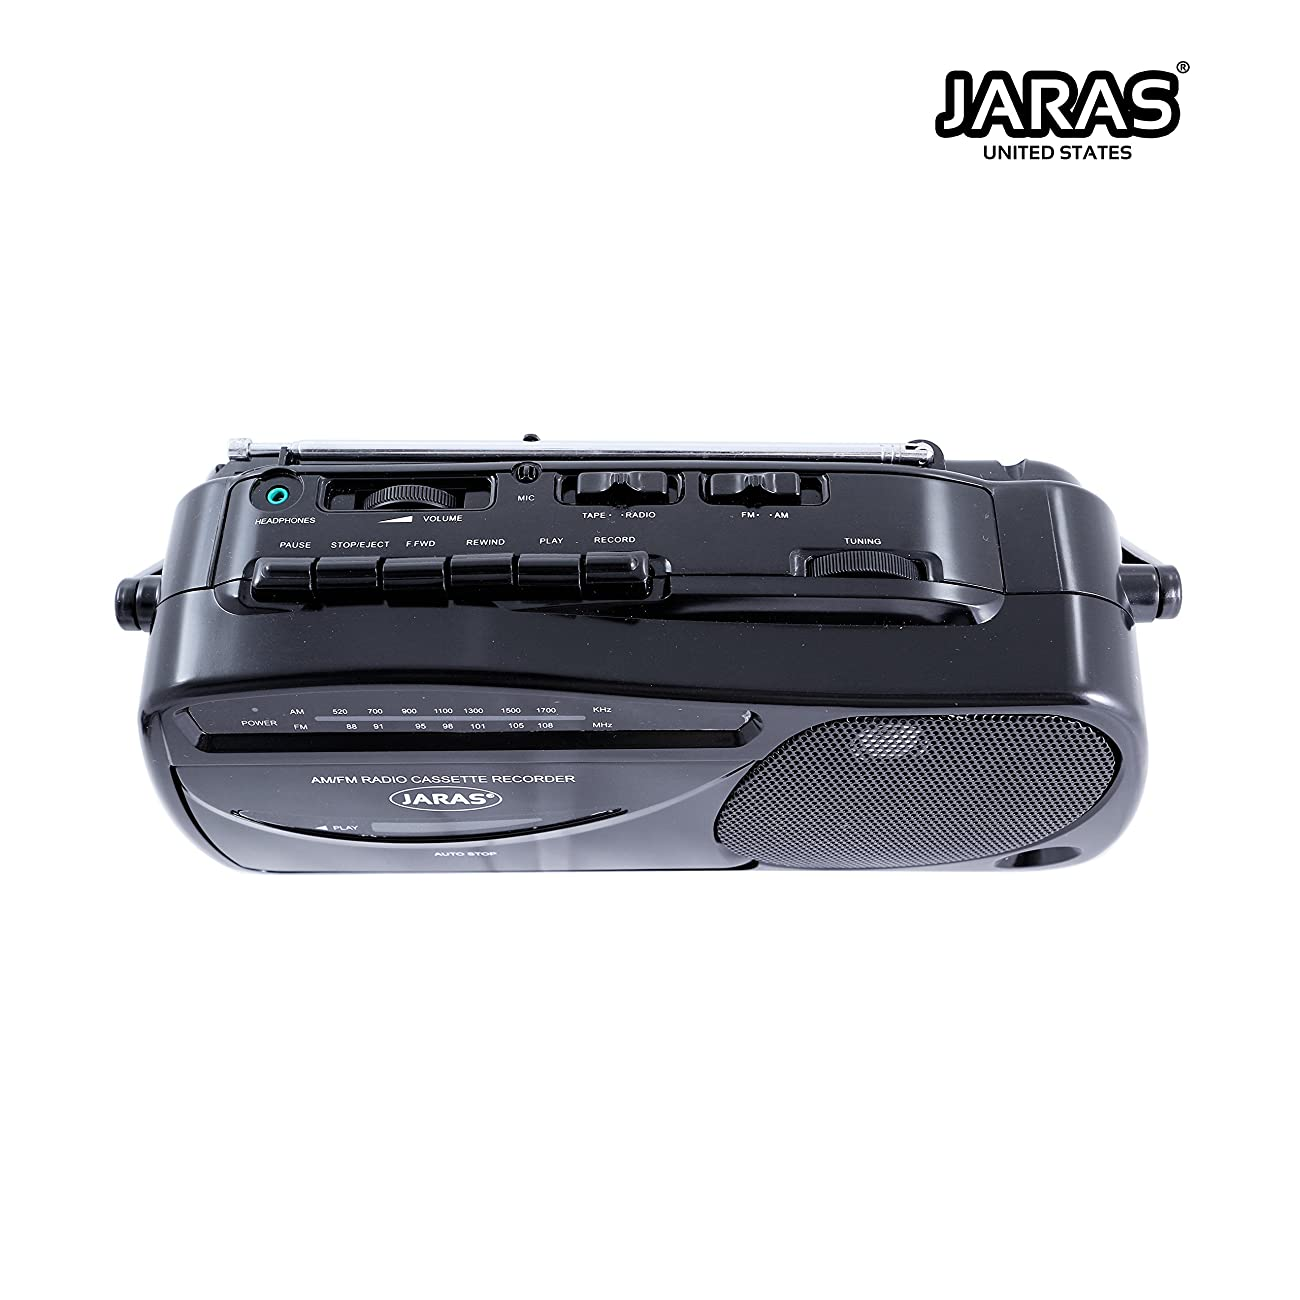 Jaras JJ-2618 Limited Edition Portable Boombox Tape Cassette Player/recorder with AM/FM Radio Stereo Speakers & Headphone Jack 4